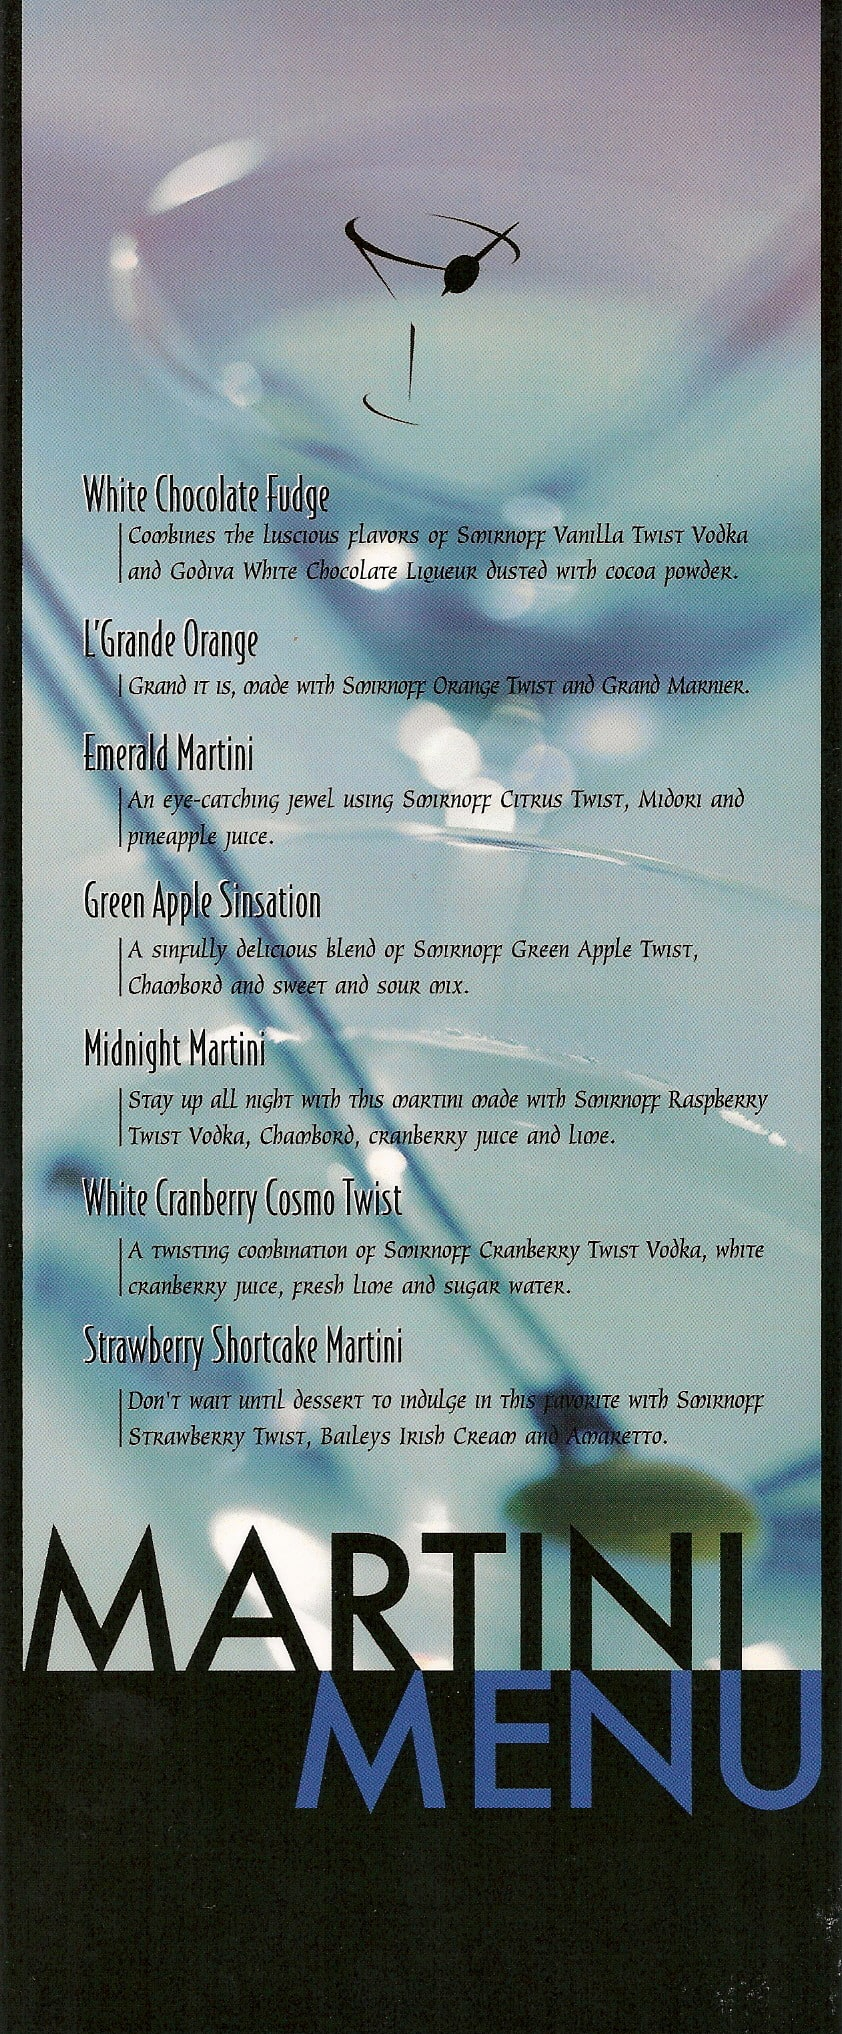 DIAGEO Martini Menu Drinks